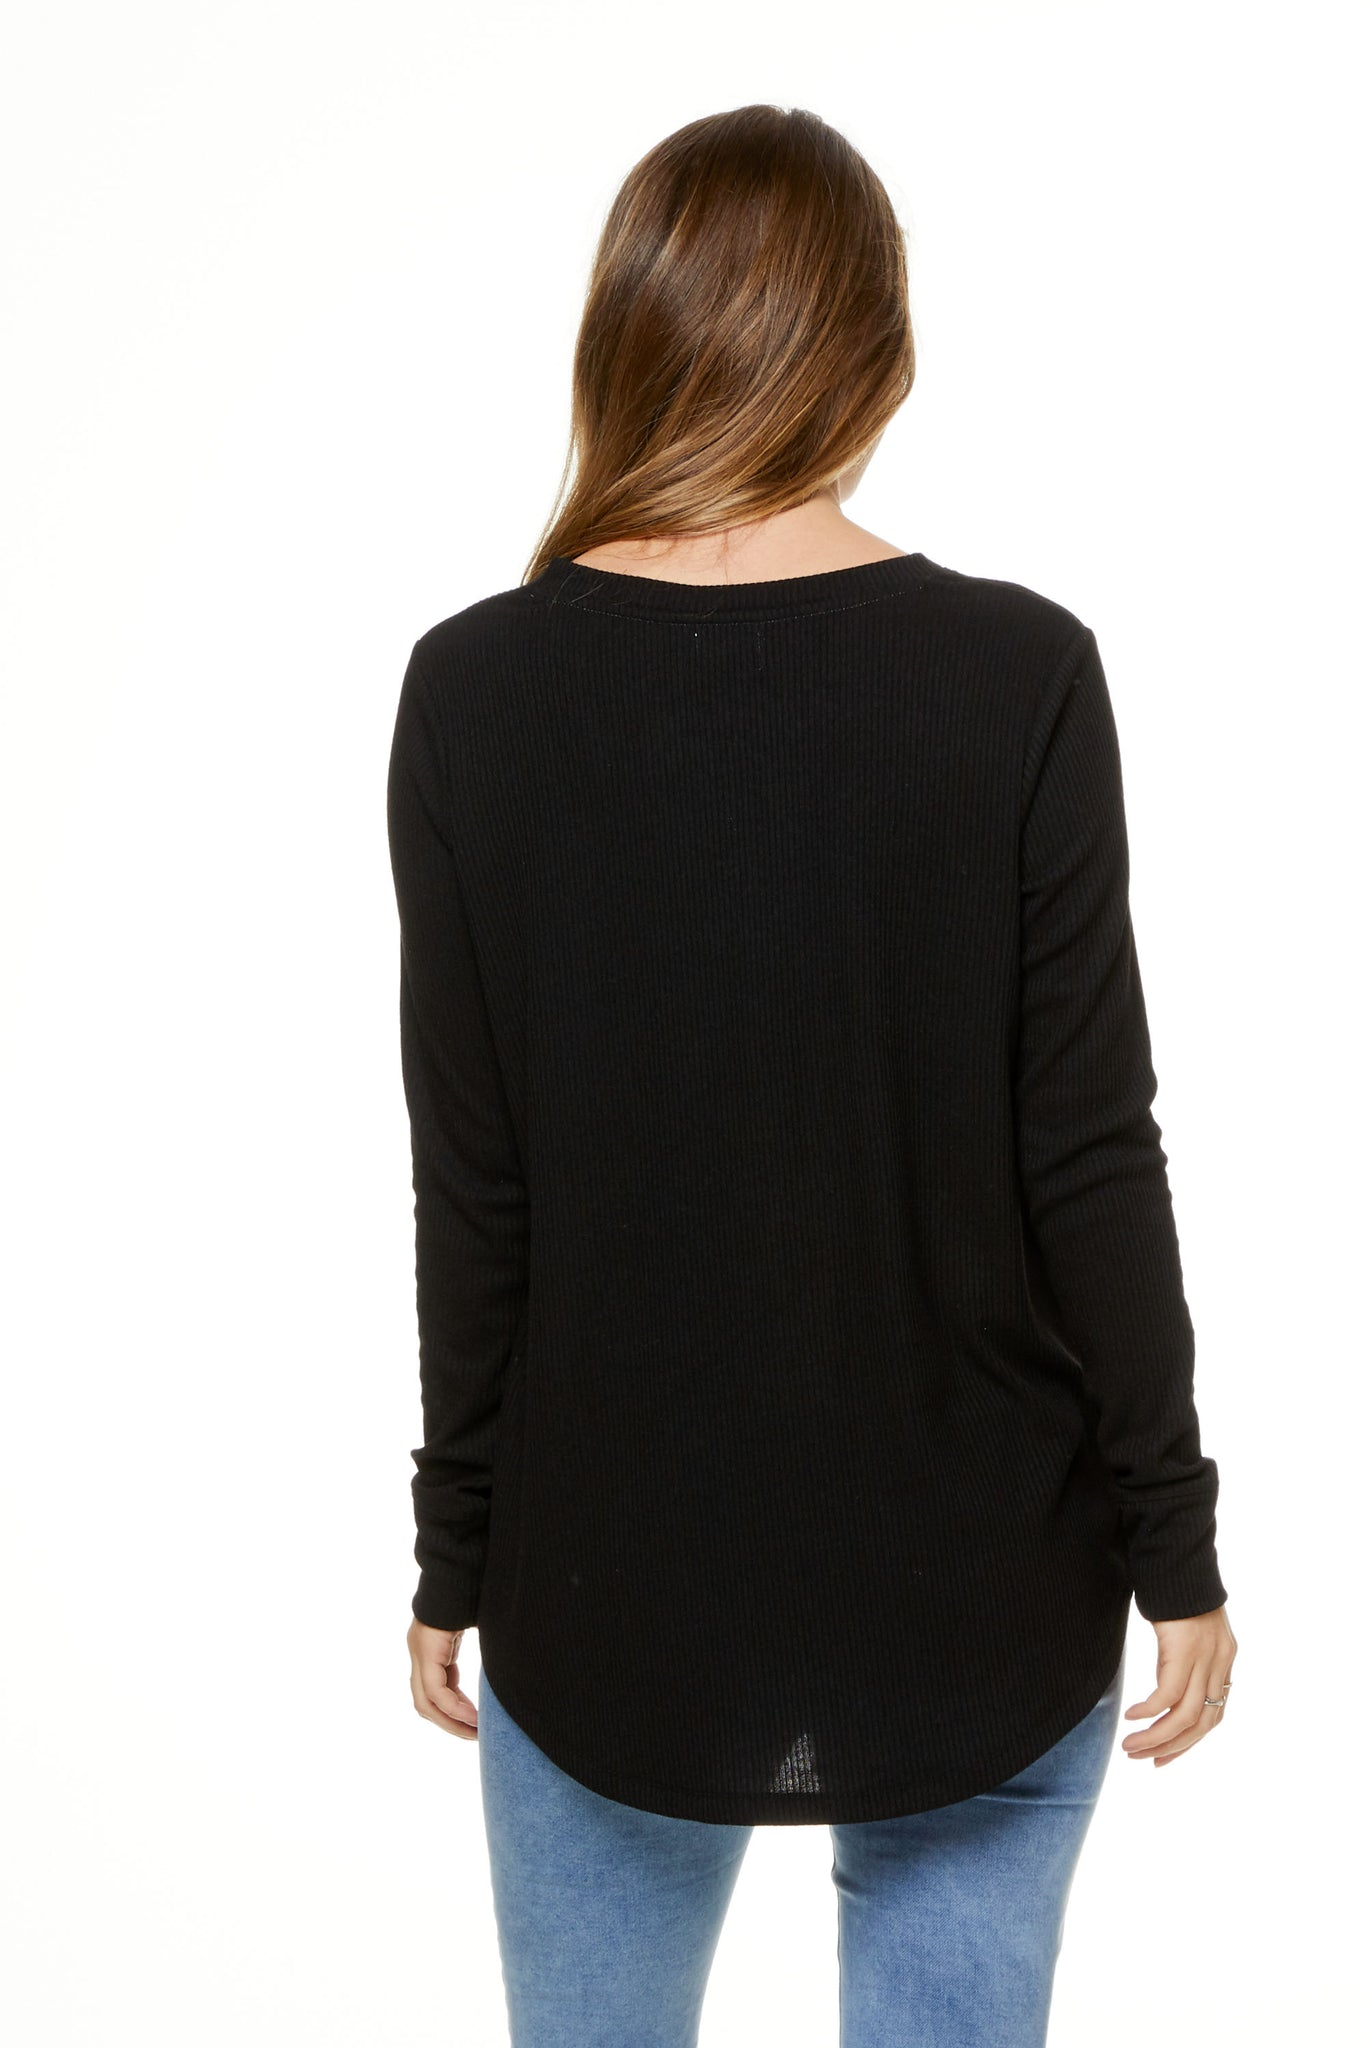 Maternity Top Black Image 3